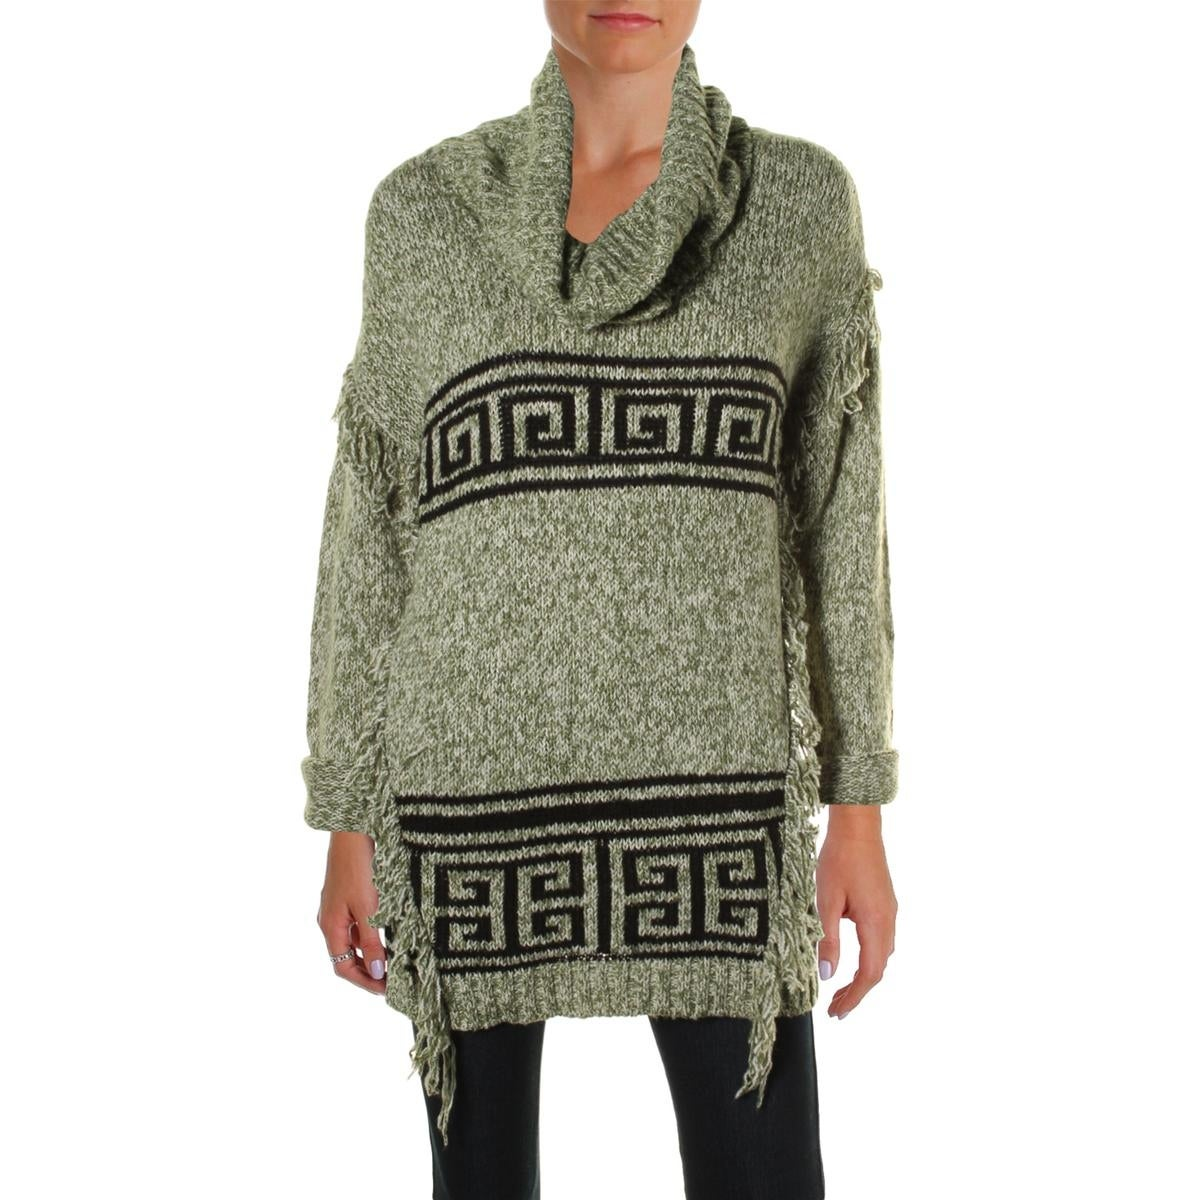 304c4a173 Shop Kensie Womens Pullover Sweater Fringe Funnel Neck - Free Shipping On  Orders Over $45 - Overstock - 13312372